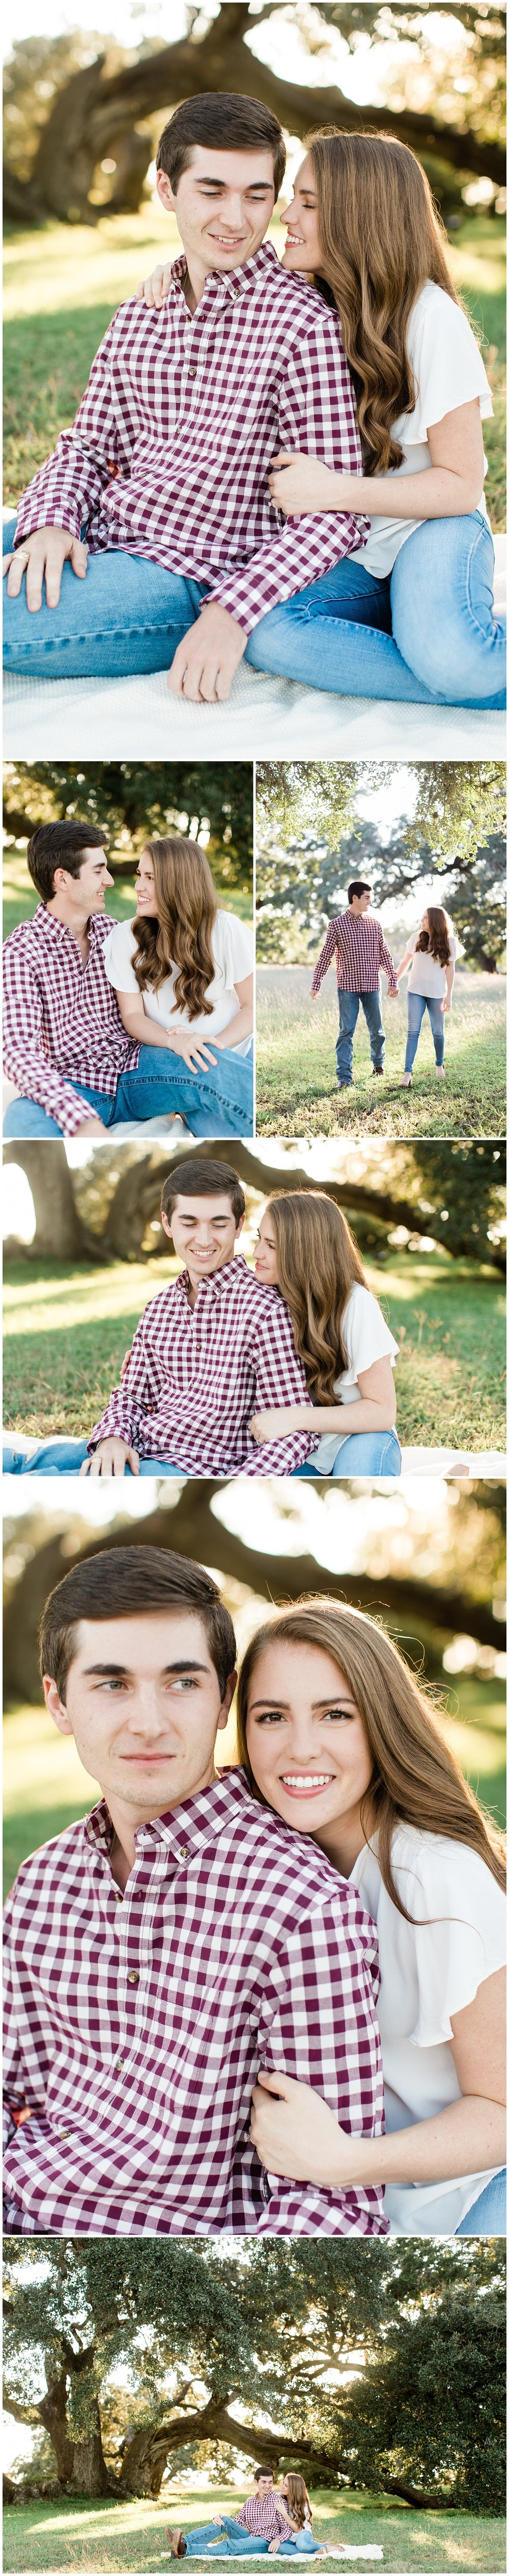 College_Station_Engagement_Session_Kristina_Ross_Photography_0002.jpg